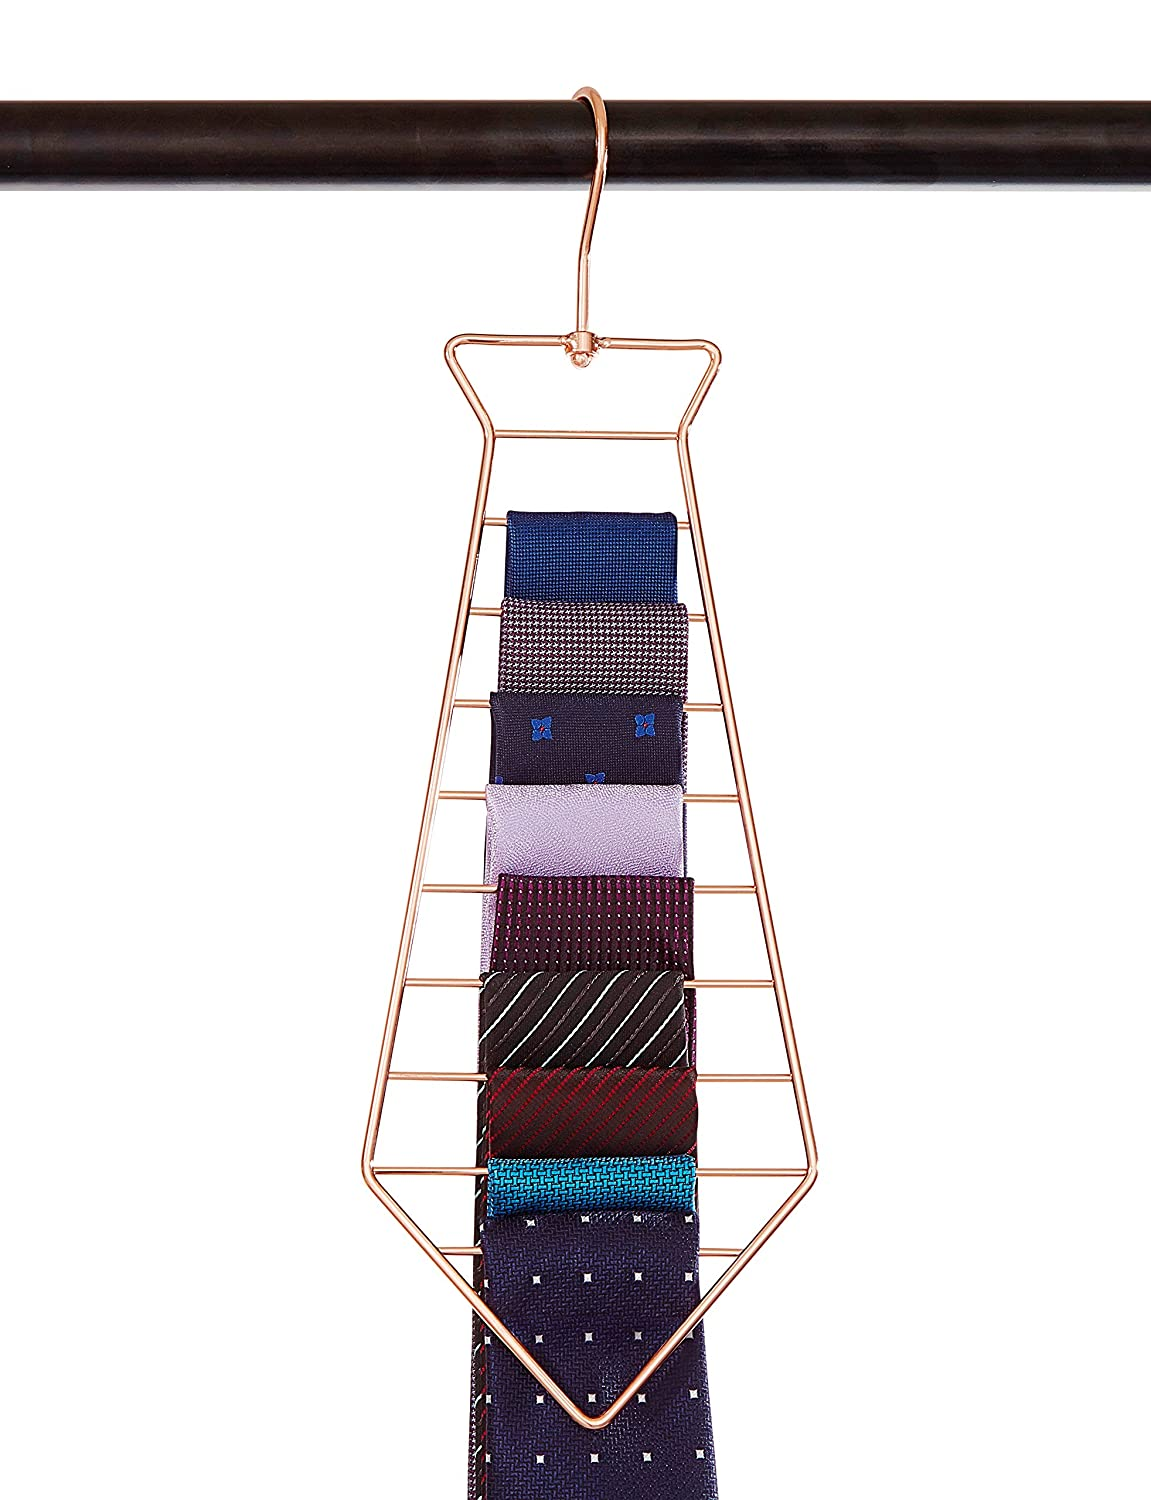 Yimai Tie Hanger Tie Organizer Updated Twirl Tie Rack Belt Hanger for Closet Organizer Storage,copper plated